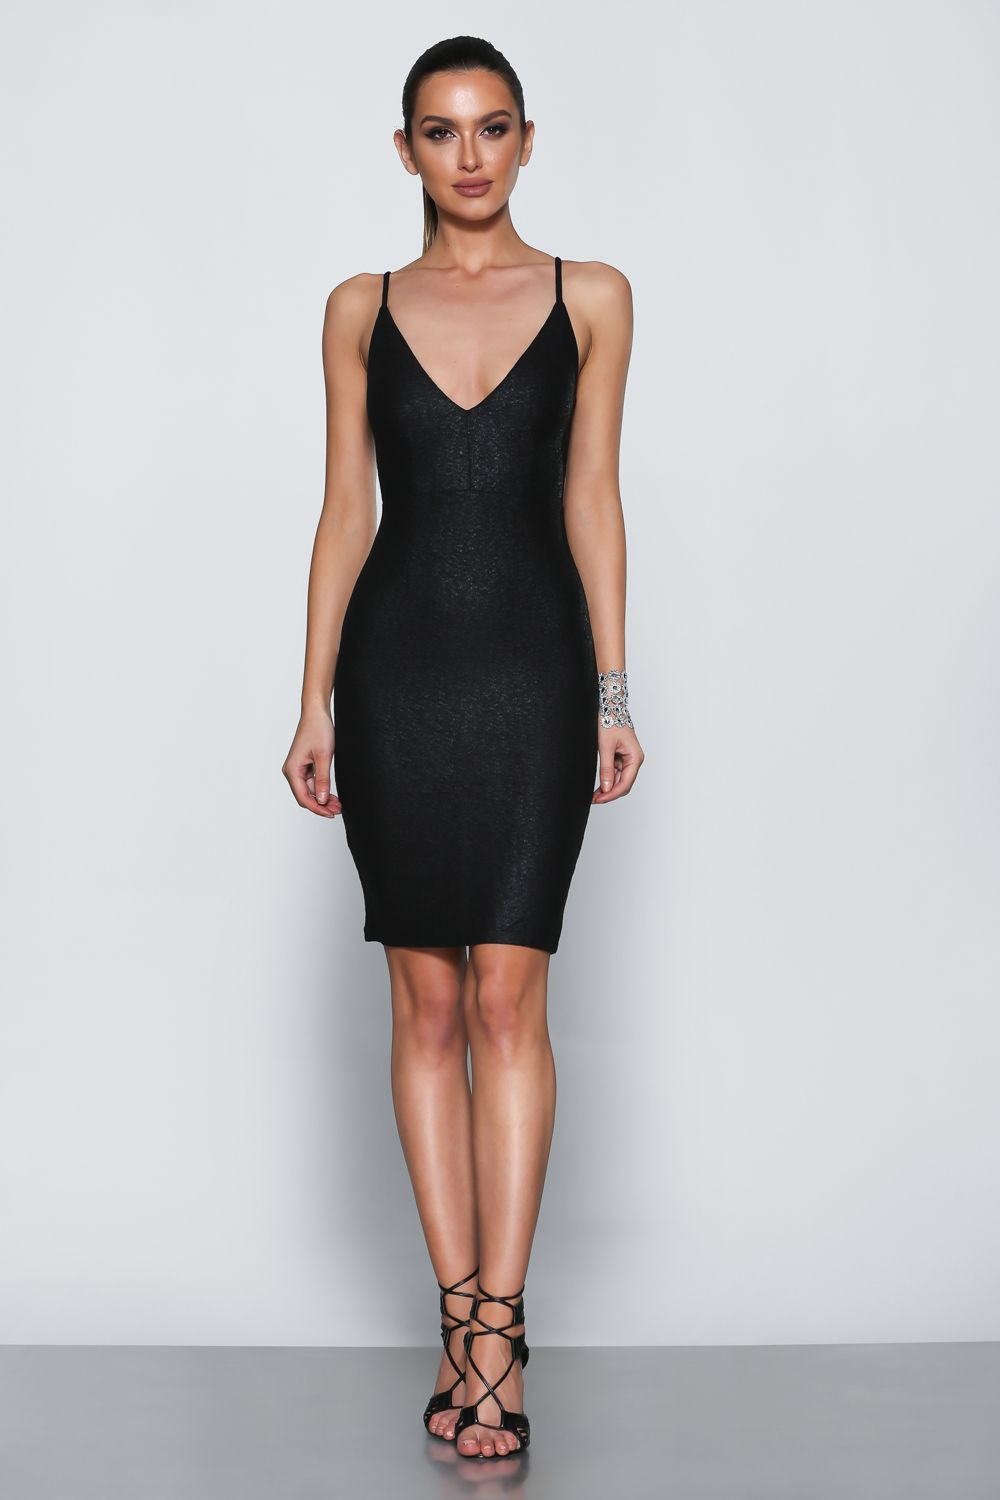 Zara black dress zara black dress zara black and black